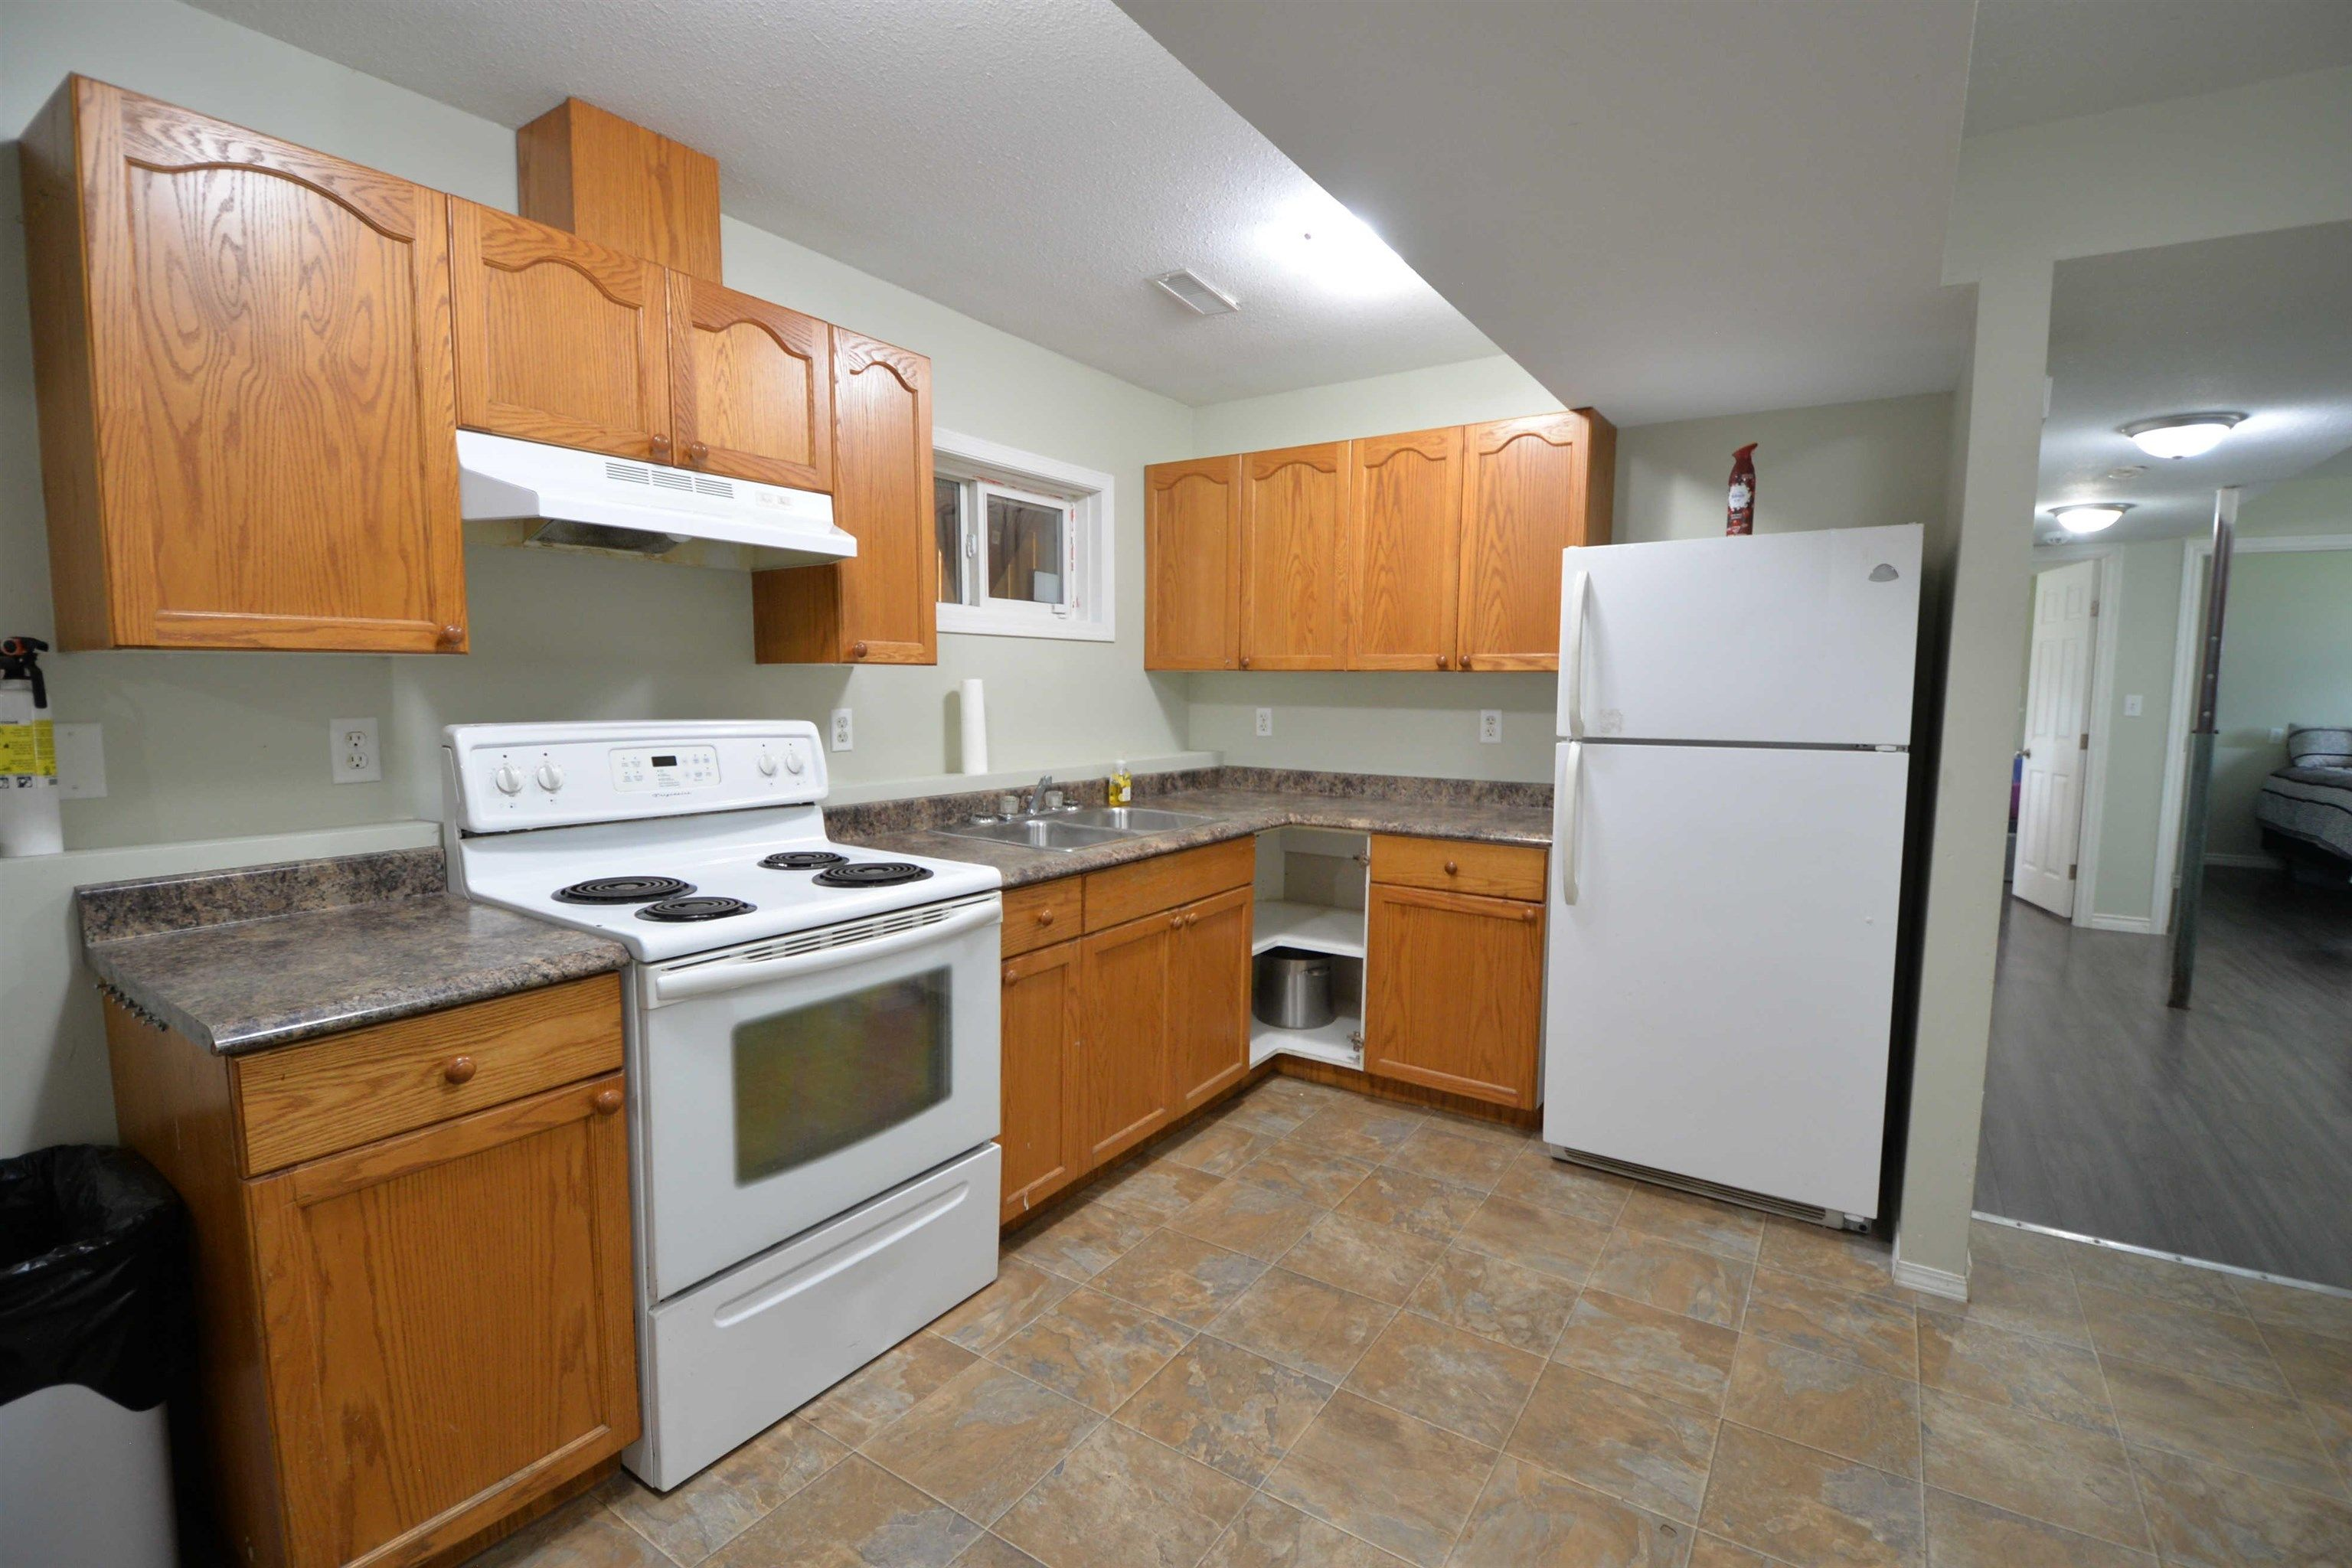 """Photo 12: Photos: 2306 OAK Street in Prince George: VLA House for sale in """"VLA"""" (PG City Central (Zone 72))  : MLS®# R2615261"""